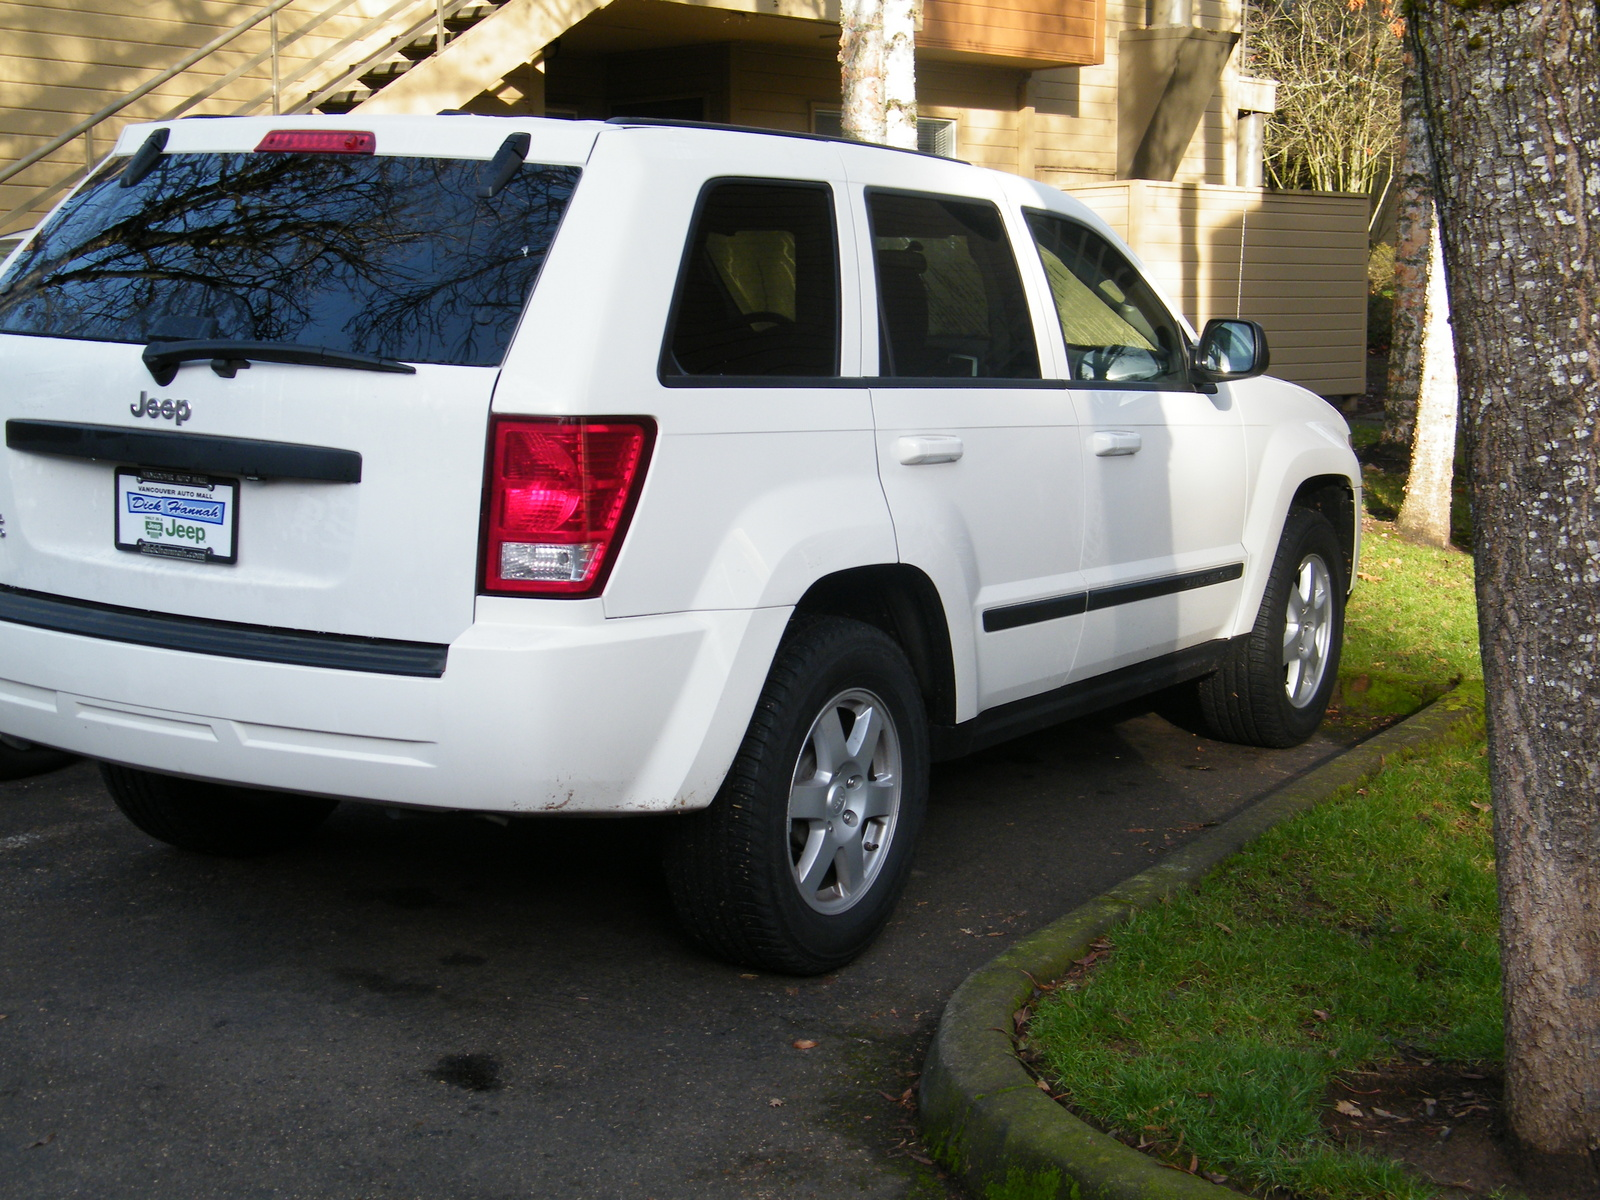 2008 jeep grand cherokee laredo 4wd picture exterior. Cars Review. Best American Auto & Cars Review